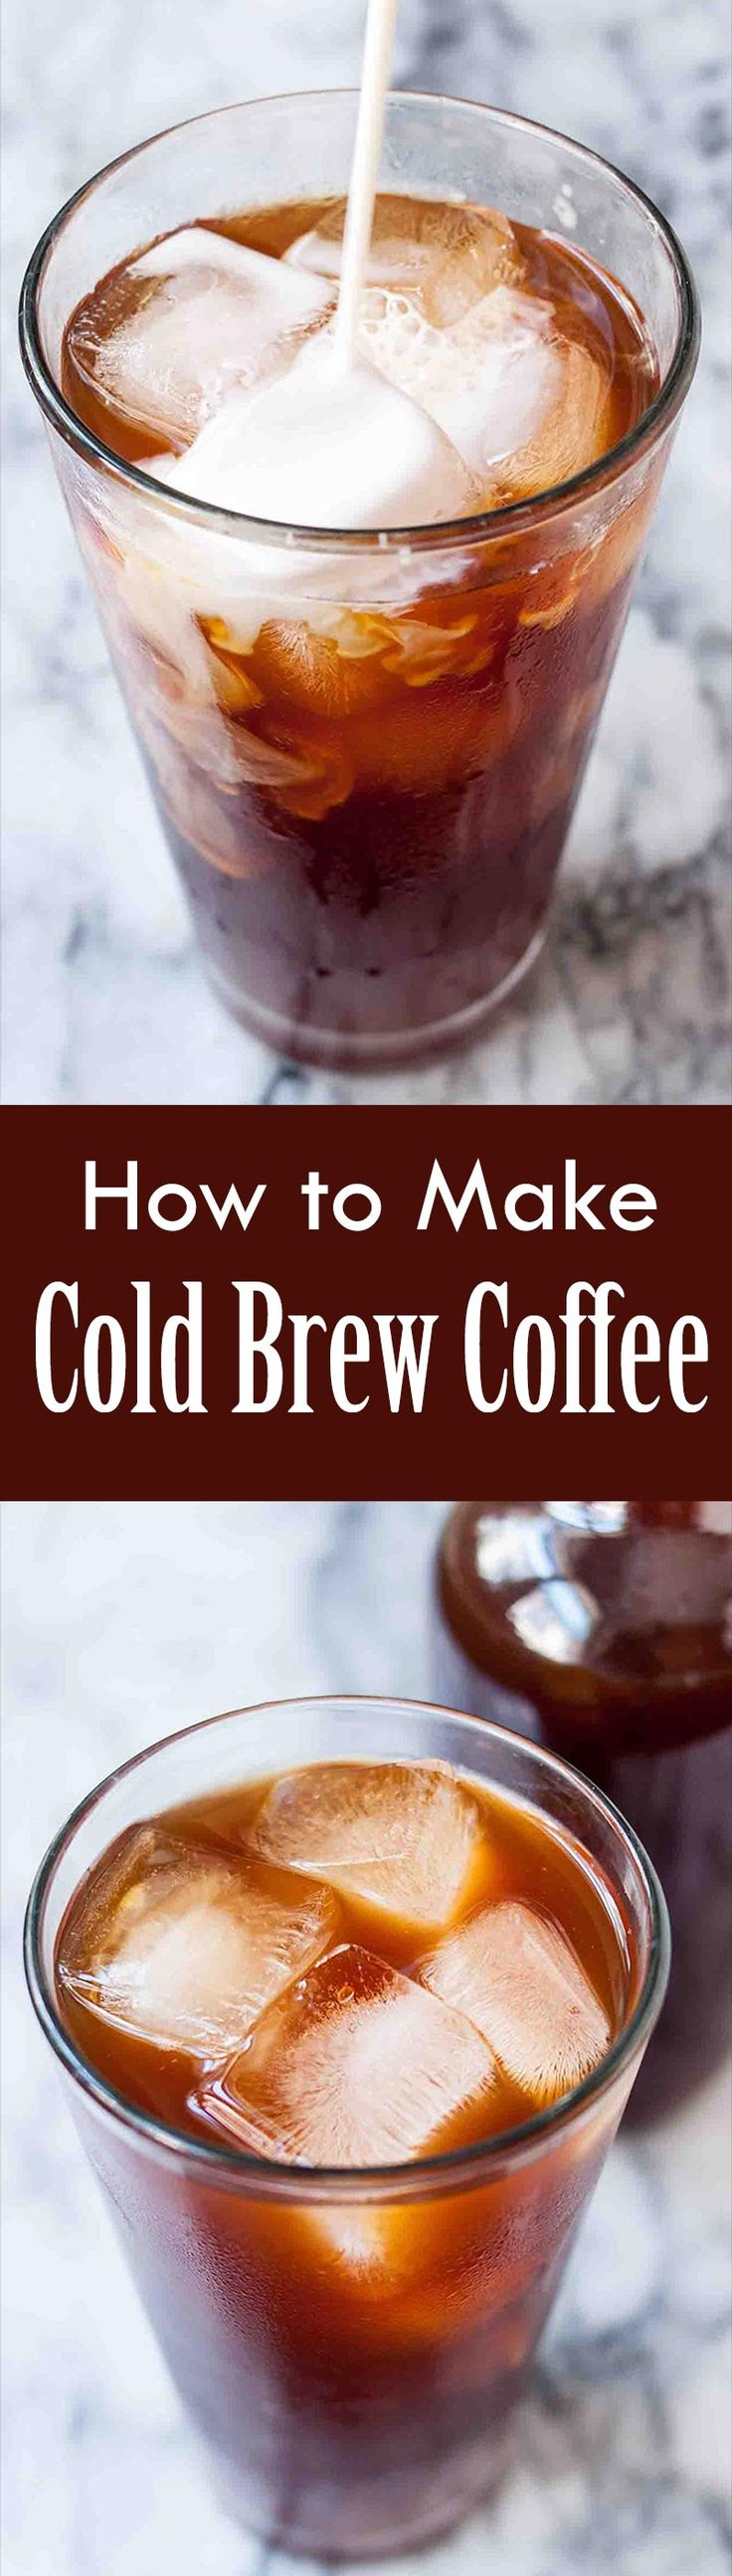 Skip the line at the coffee shop and make your own cold brew iced coffee! This method is so easy, saves you money, and makes a great glass of iced coffee.